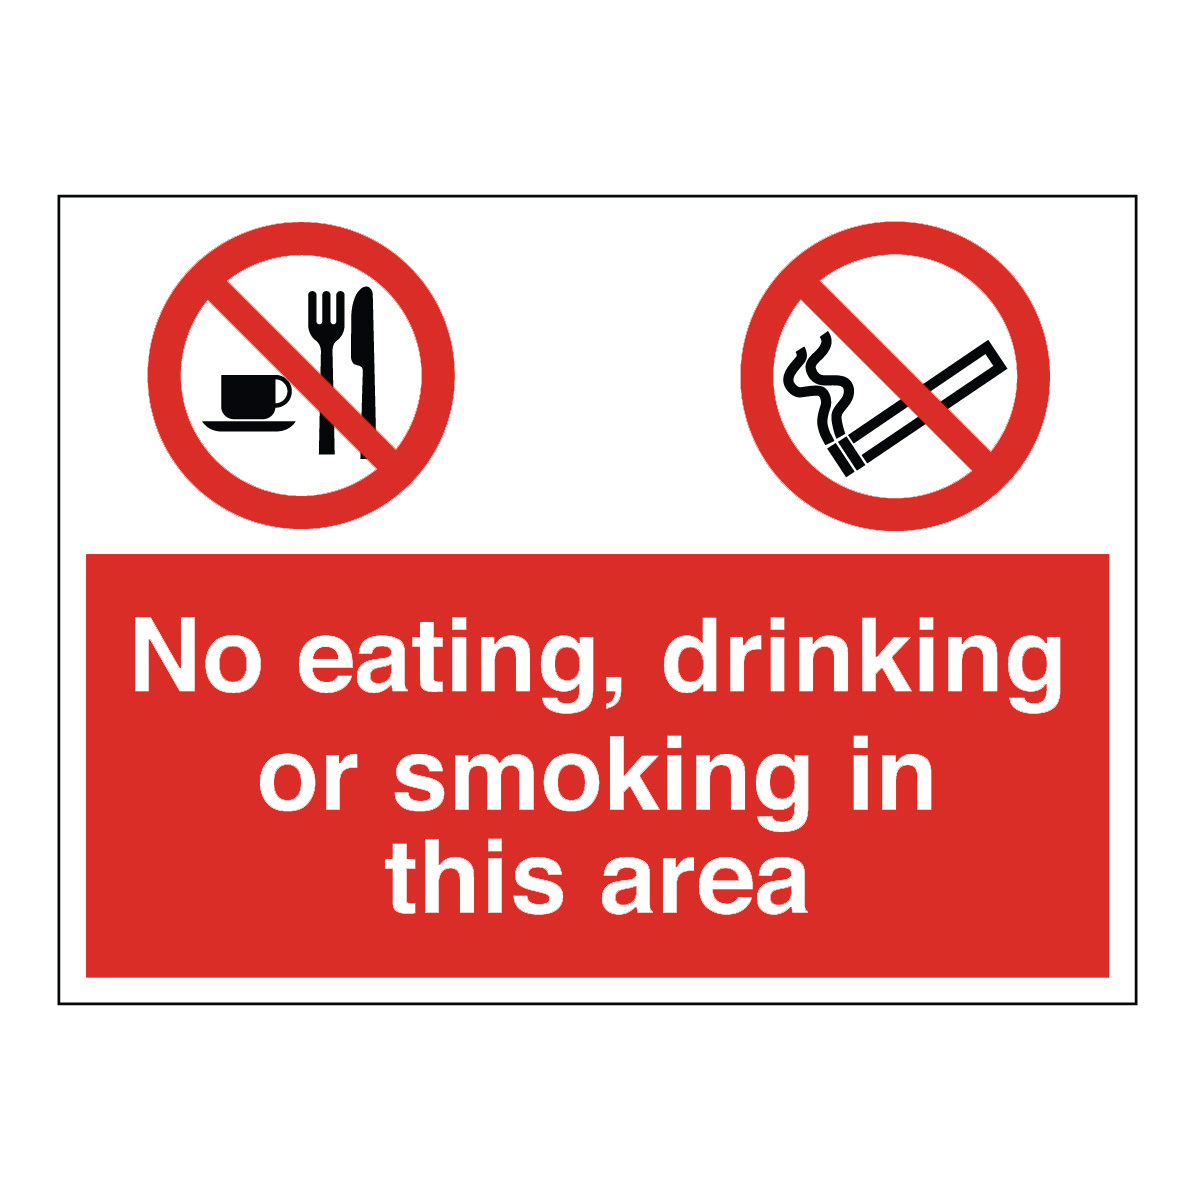 Что такое eating prohibitted 14 фотография